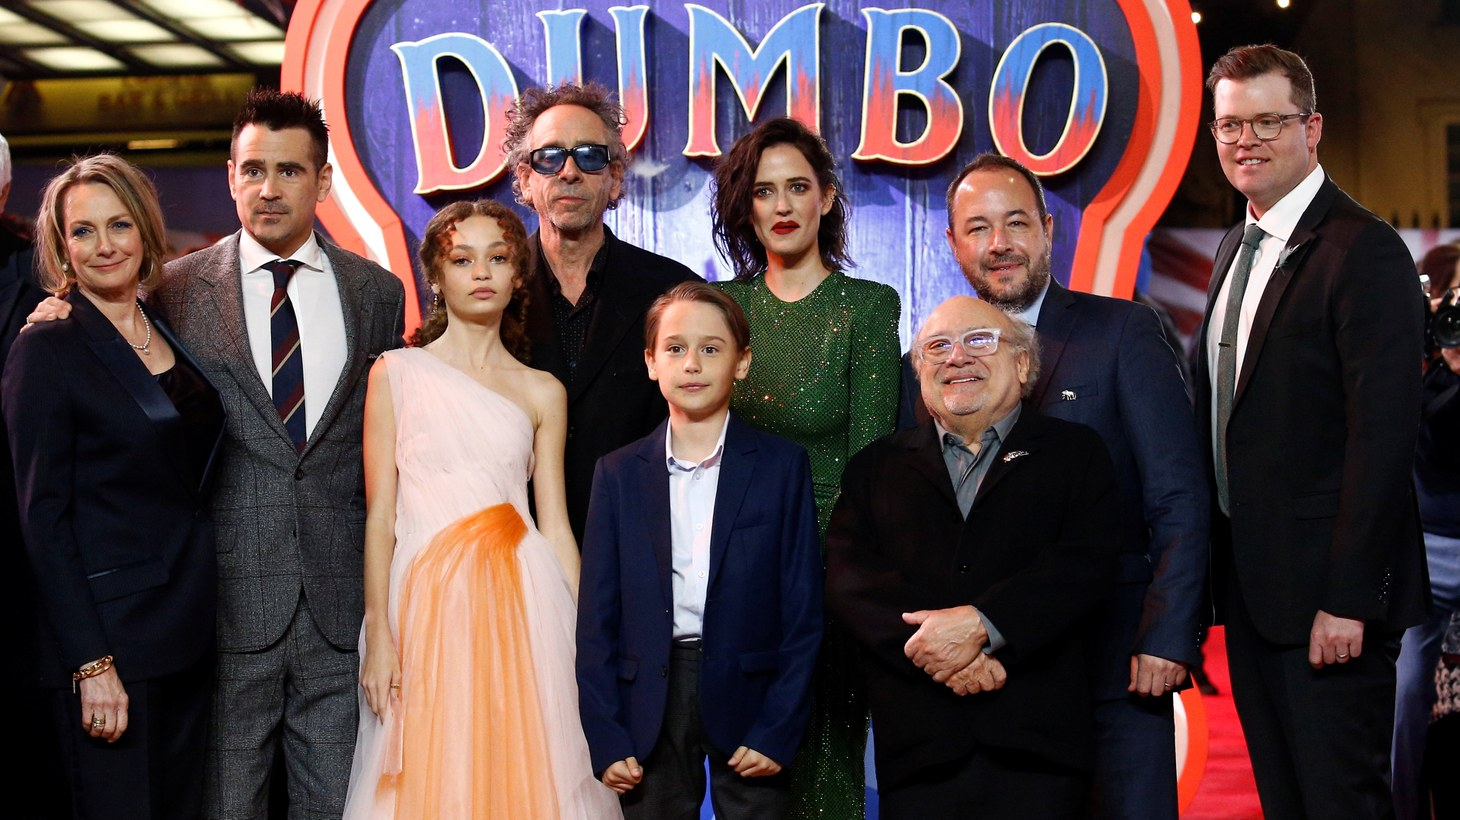 "Producer Katterli Frauenfelder, actor Colin Farrell, actor Nico Parker, director Tim Burton, actor Finley Hobbins, actor Eva Green, actor Danny DeVito, producers Derek Frey and Justin Springer attend the European premiere of ""Dumbo"" movie in London, Britain March 21, 2019."